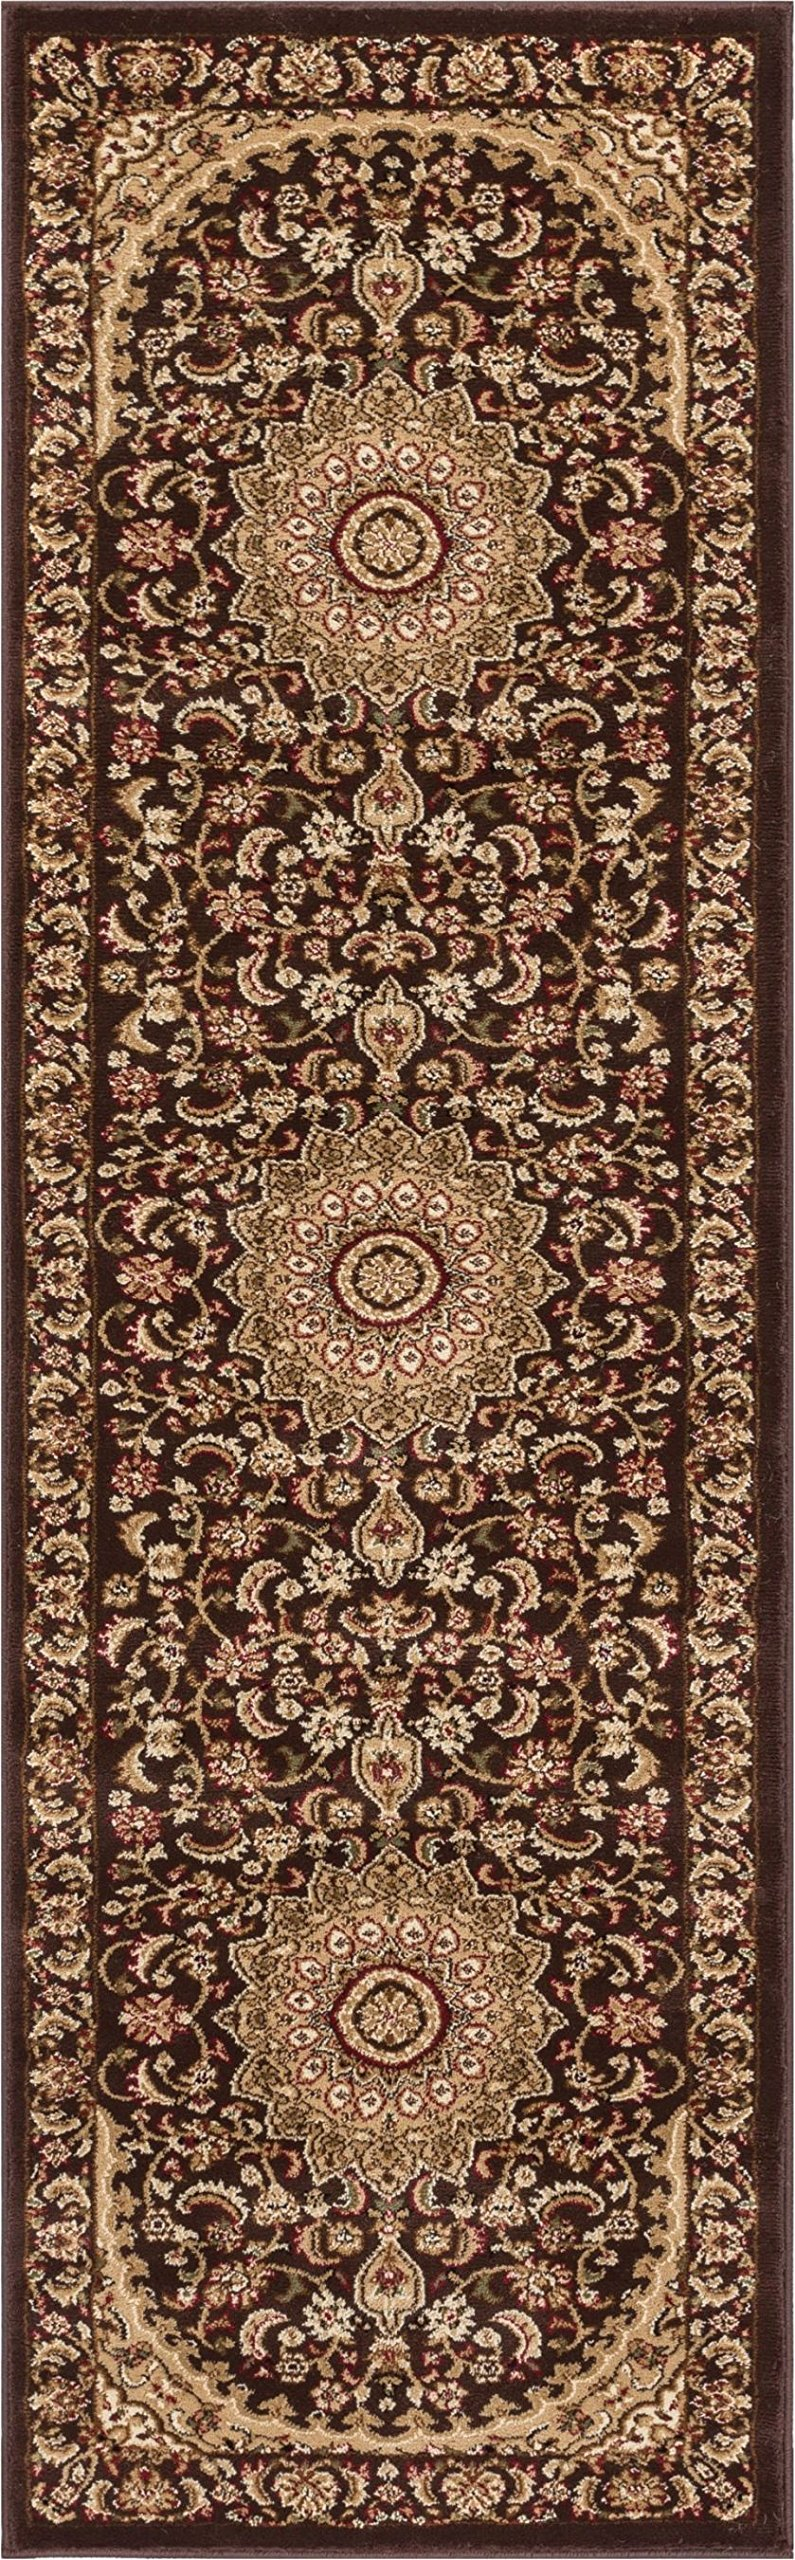 Well Woven 36472 Timeless Aviva Traditional French Country Oriental Brown Rug 2'3'' x 7'3'' Runner